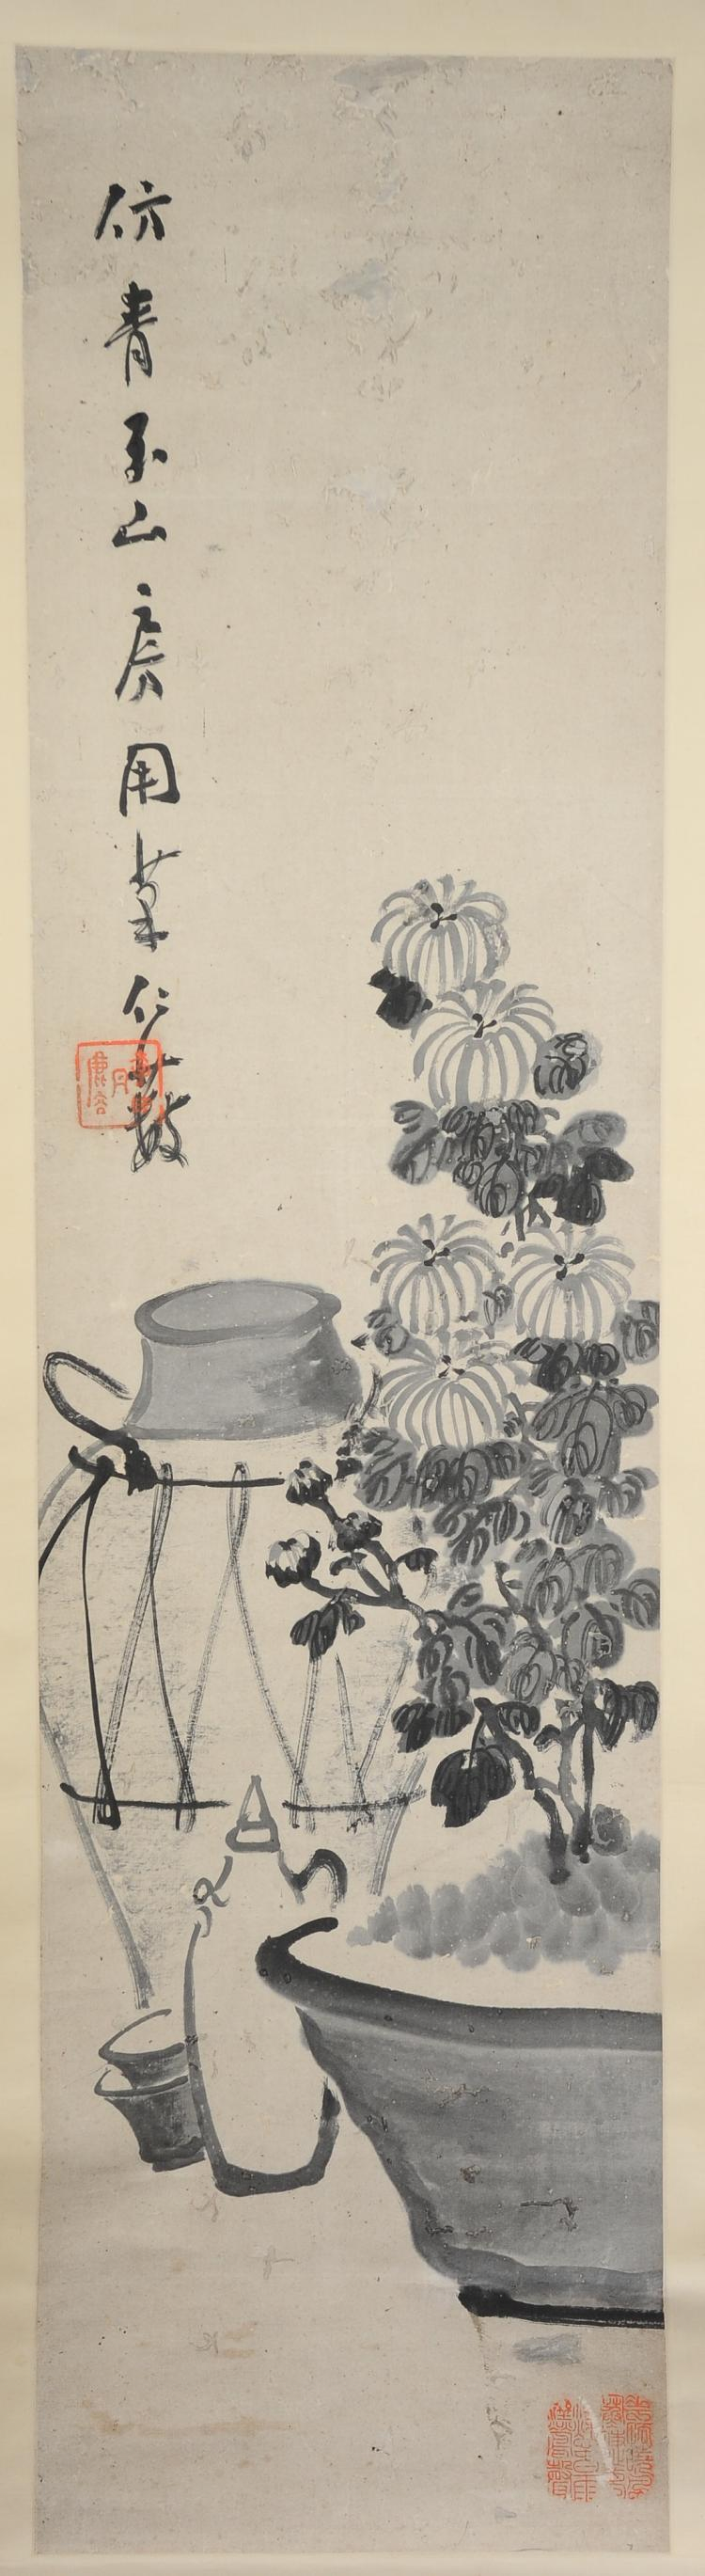 Calligraphy by Li Danqi, 19th - Early 20th Century